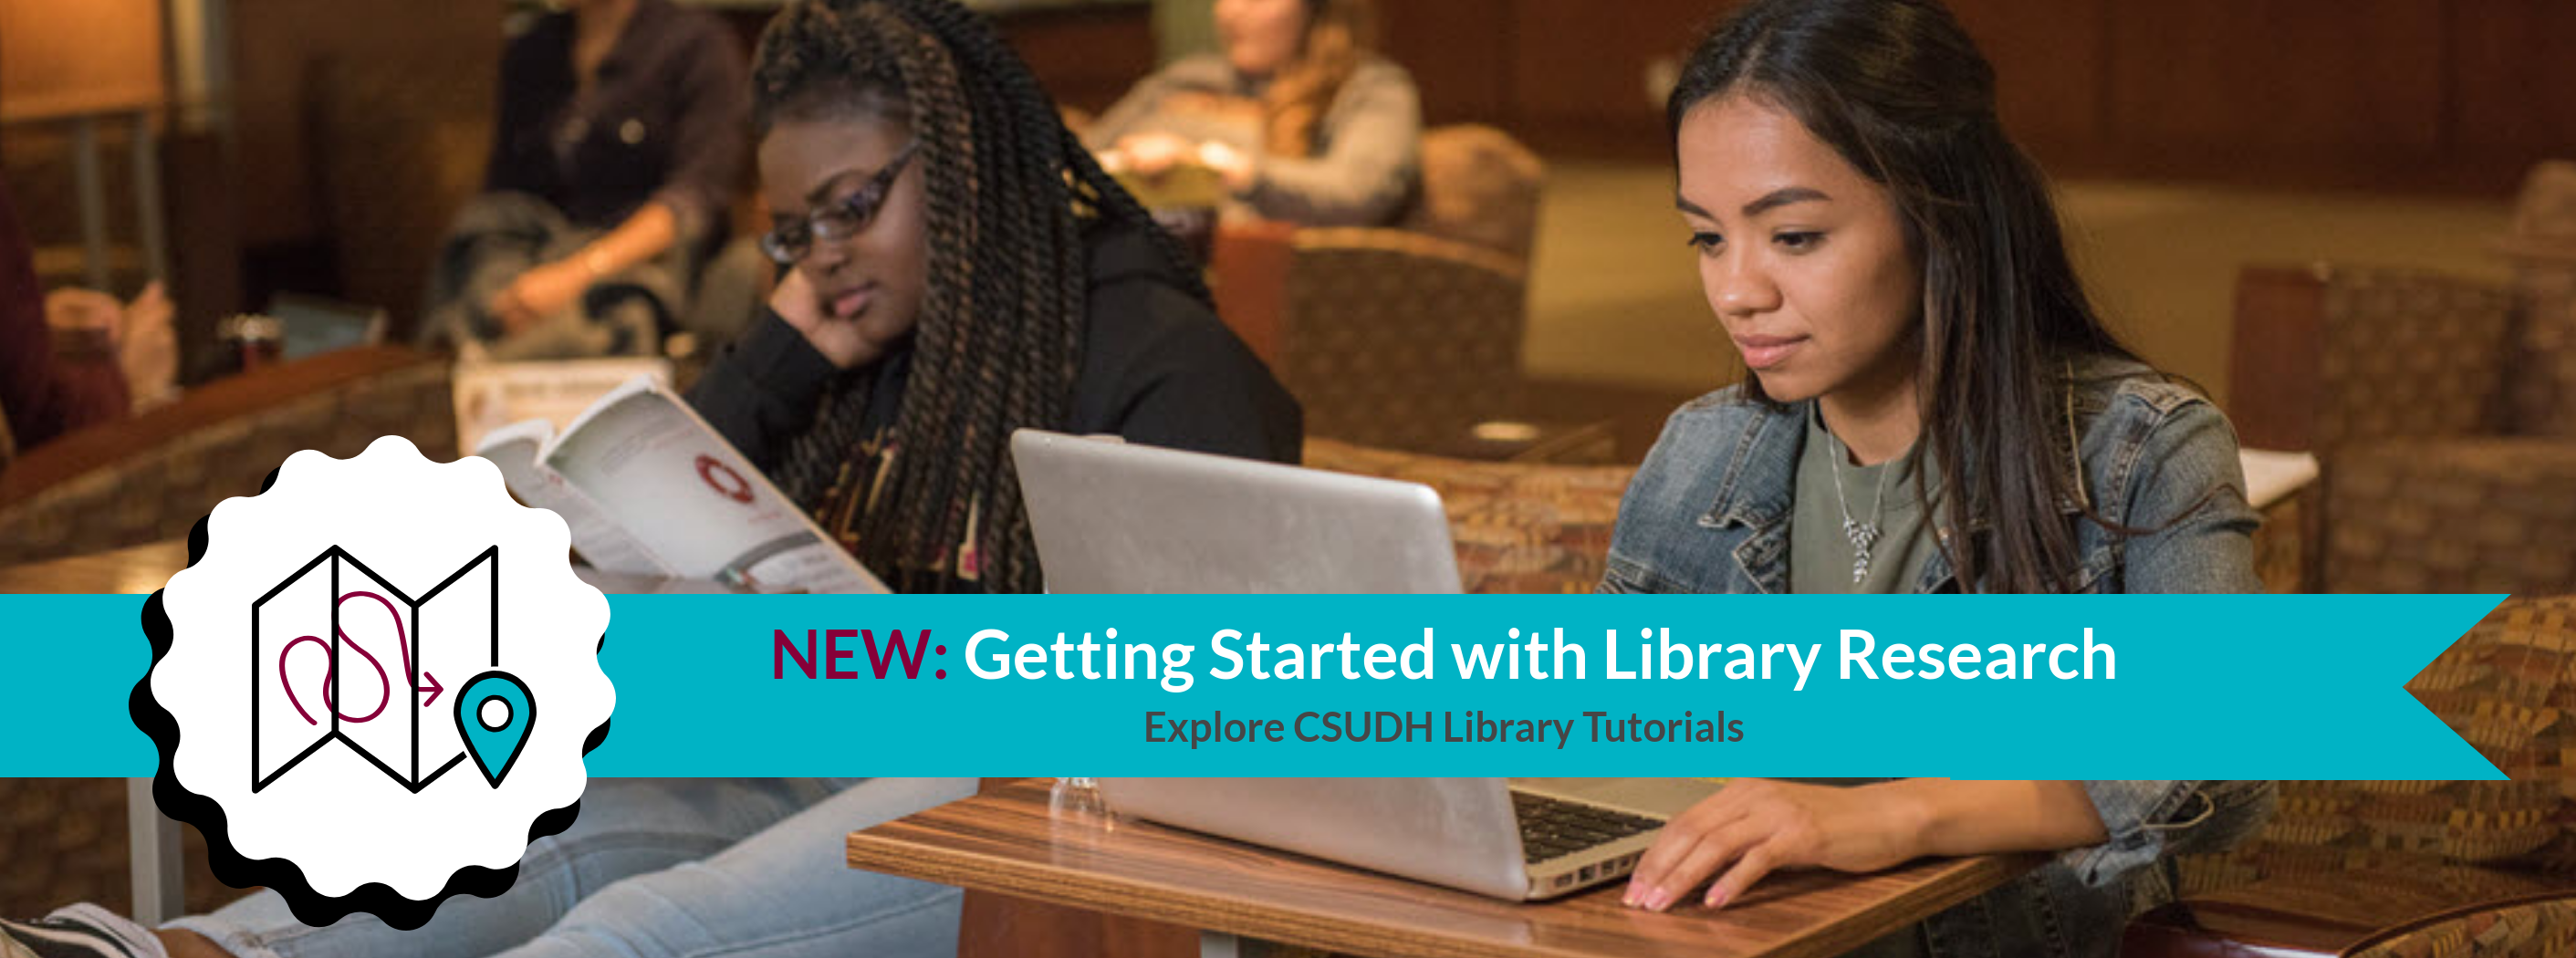 New: Getting Started with Library Research. Explore CSUDH Library Tutorials